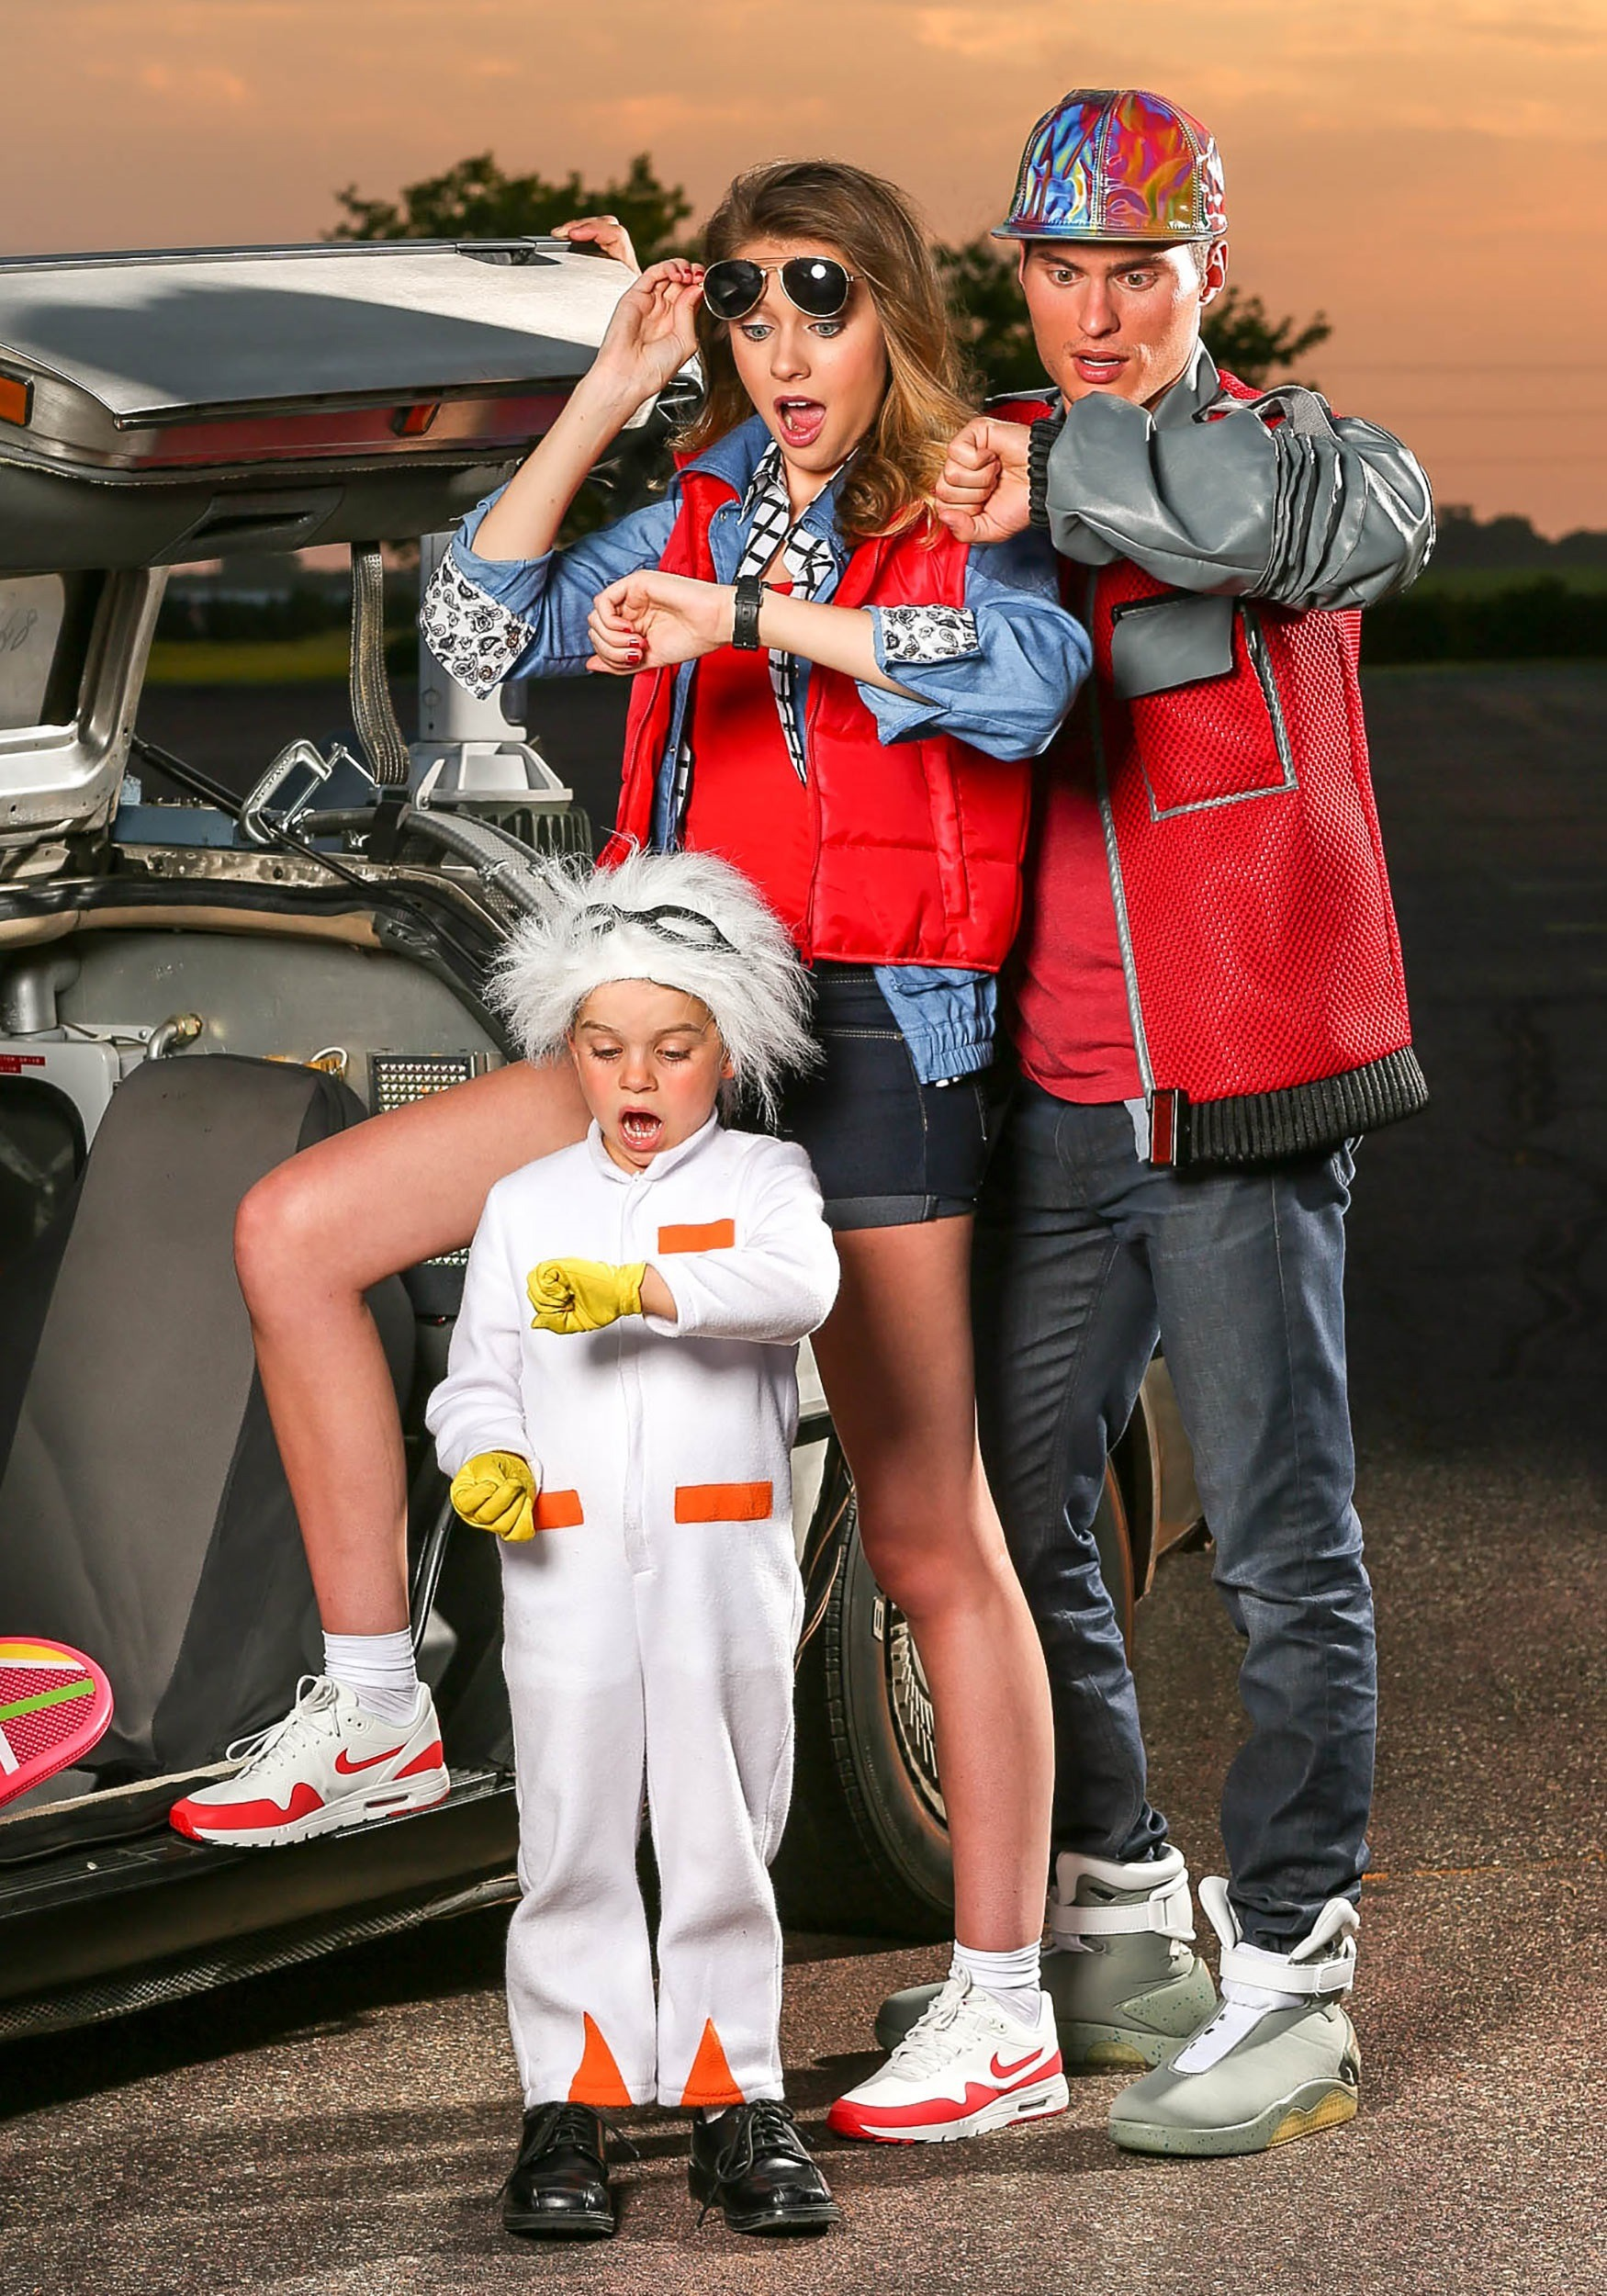 womens marty mcfly costume